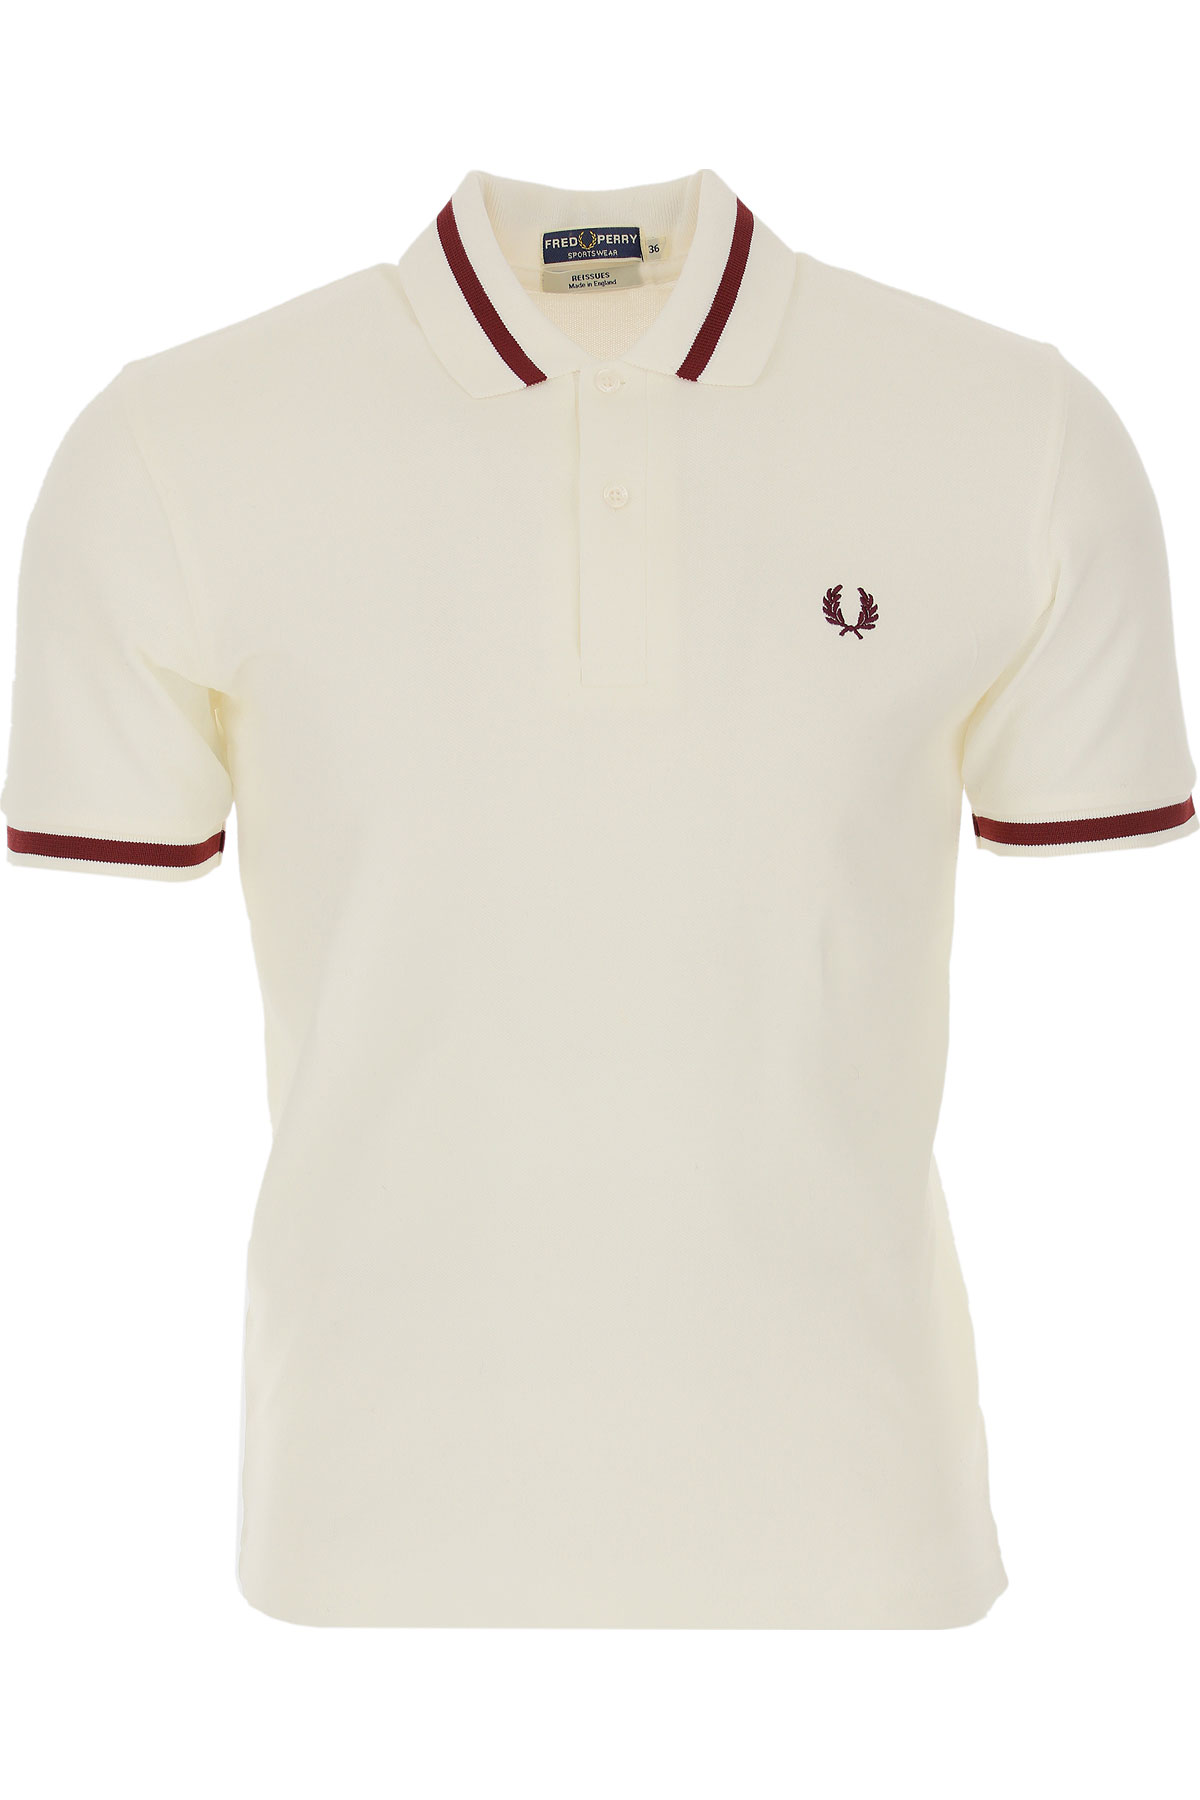 Fred Perry Mens Clothing On Sale, White, Cotton, 2019, L M S